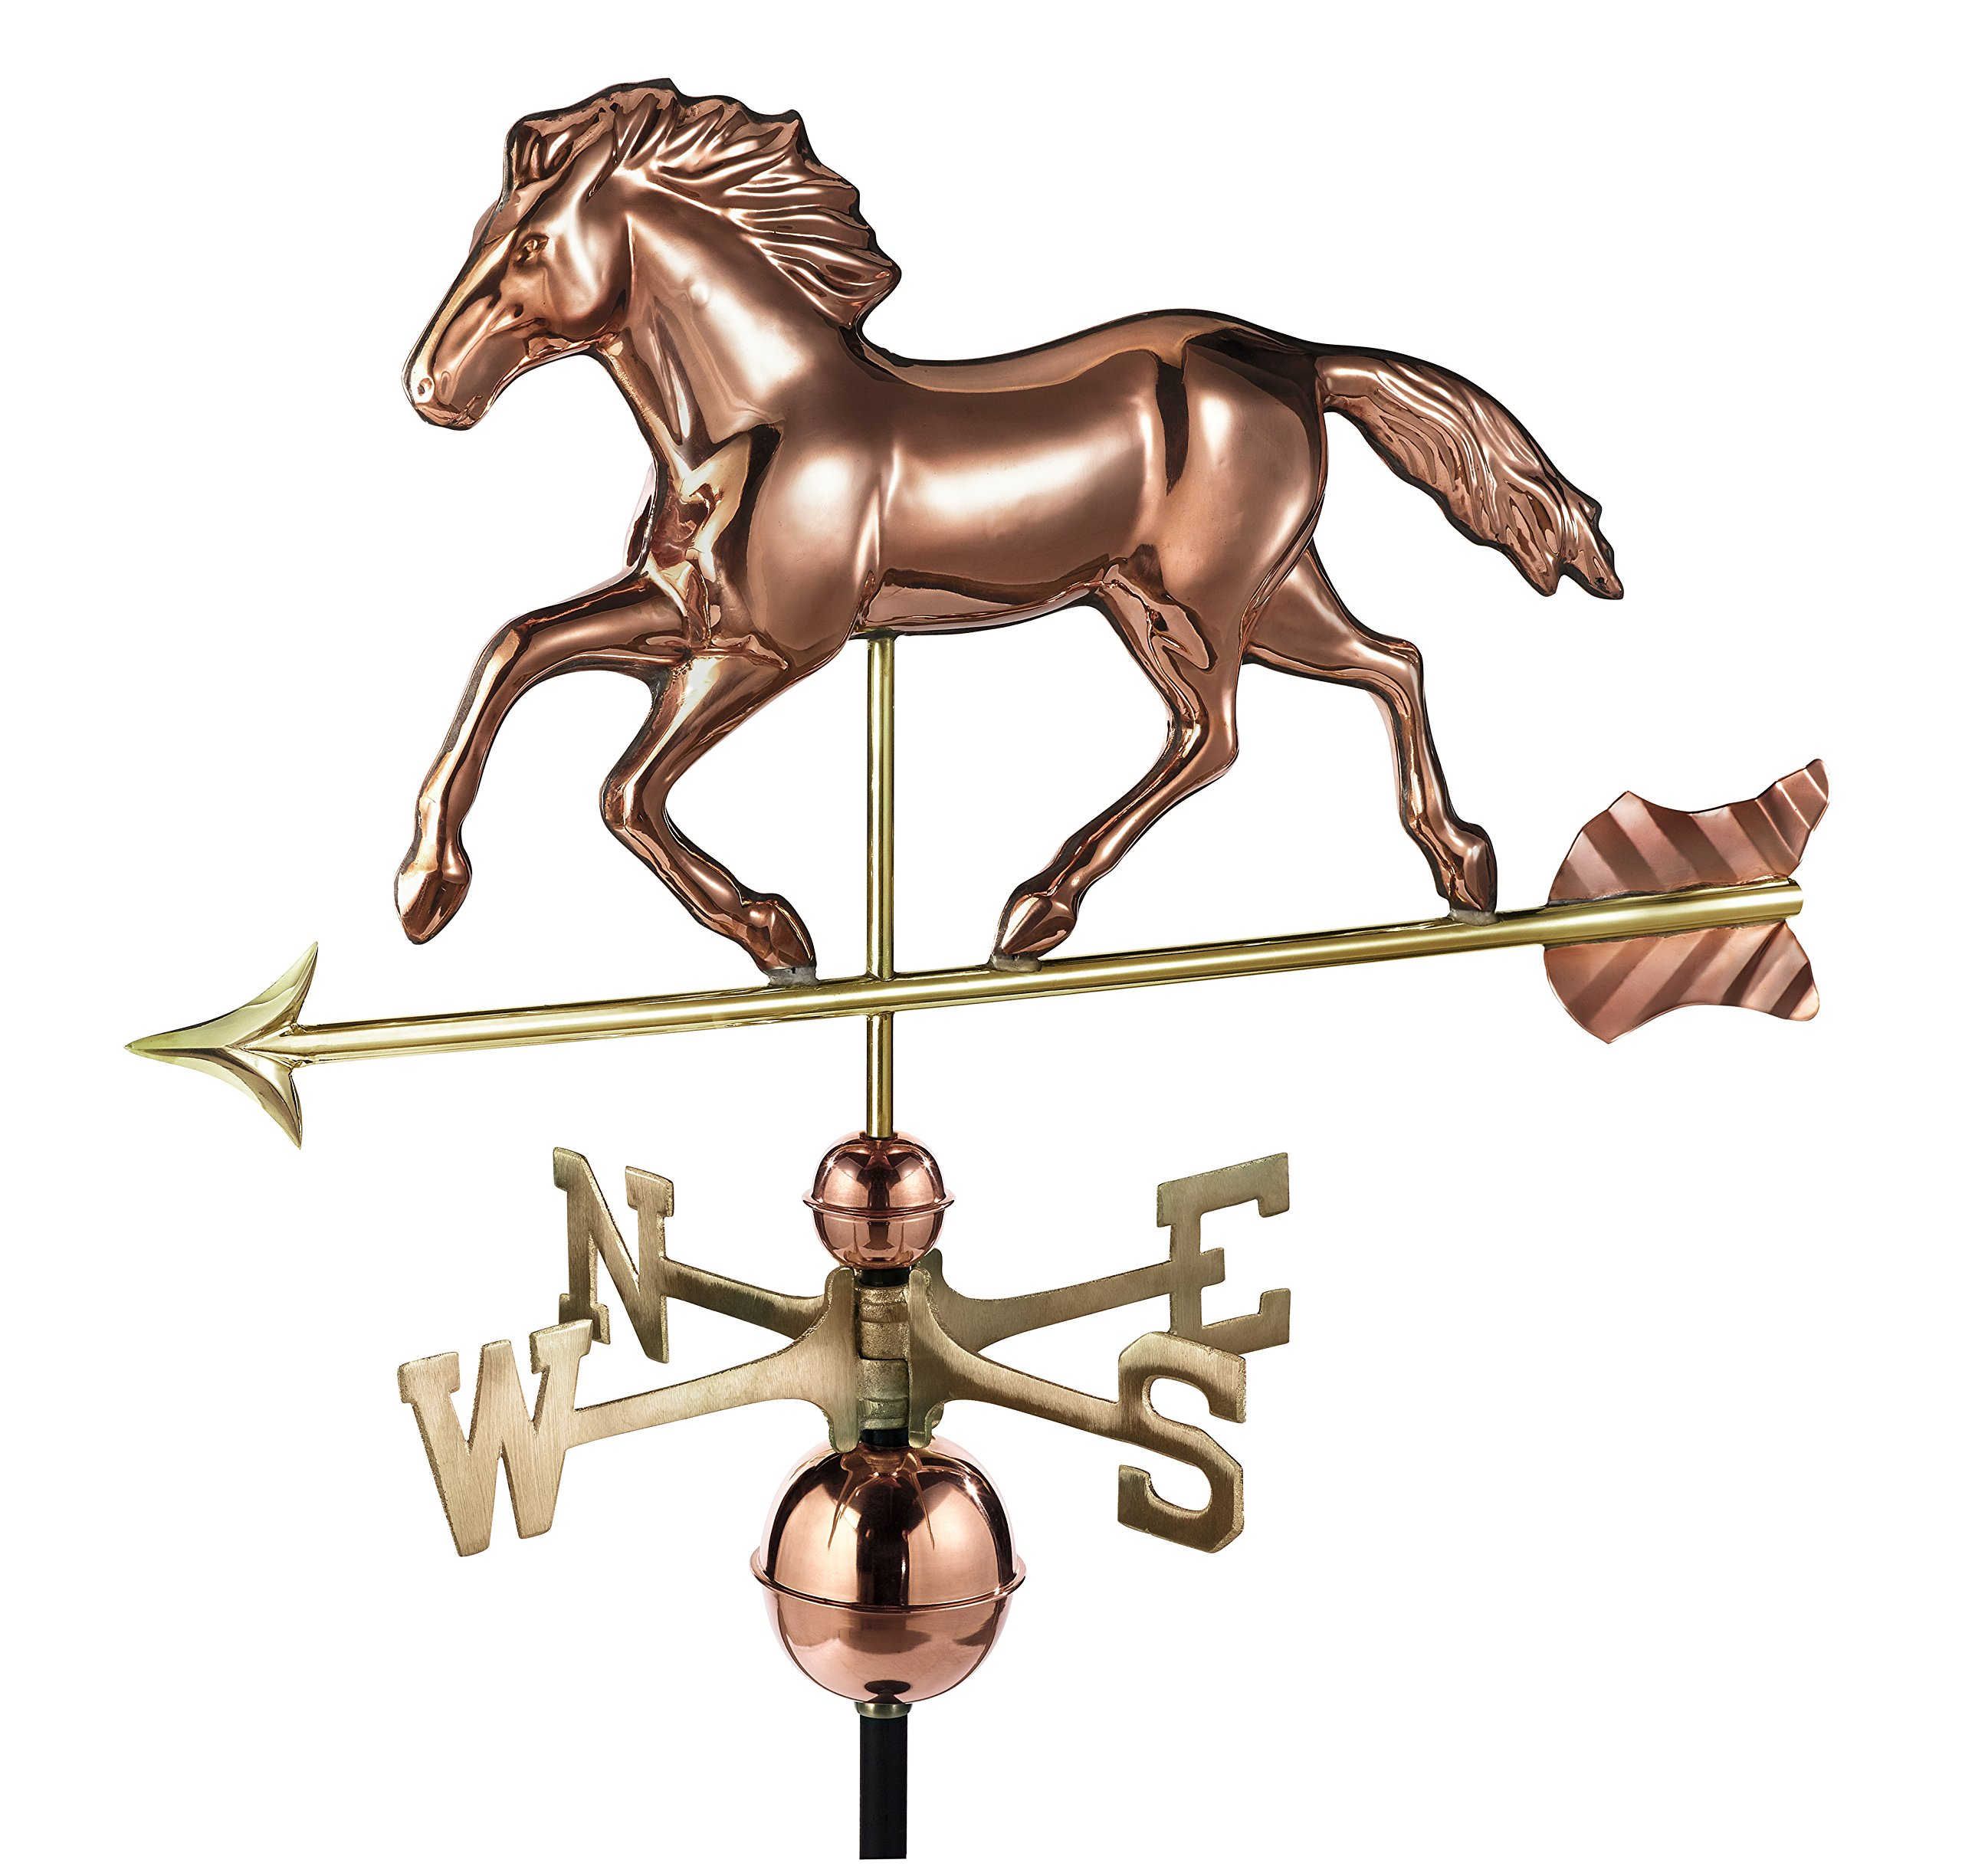 Good Directions Smithsonian Running Horse Weathervane, Pure Copper by Good Directions